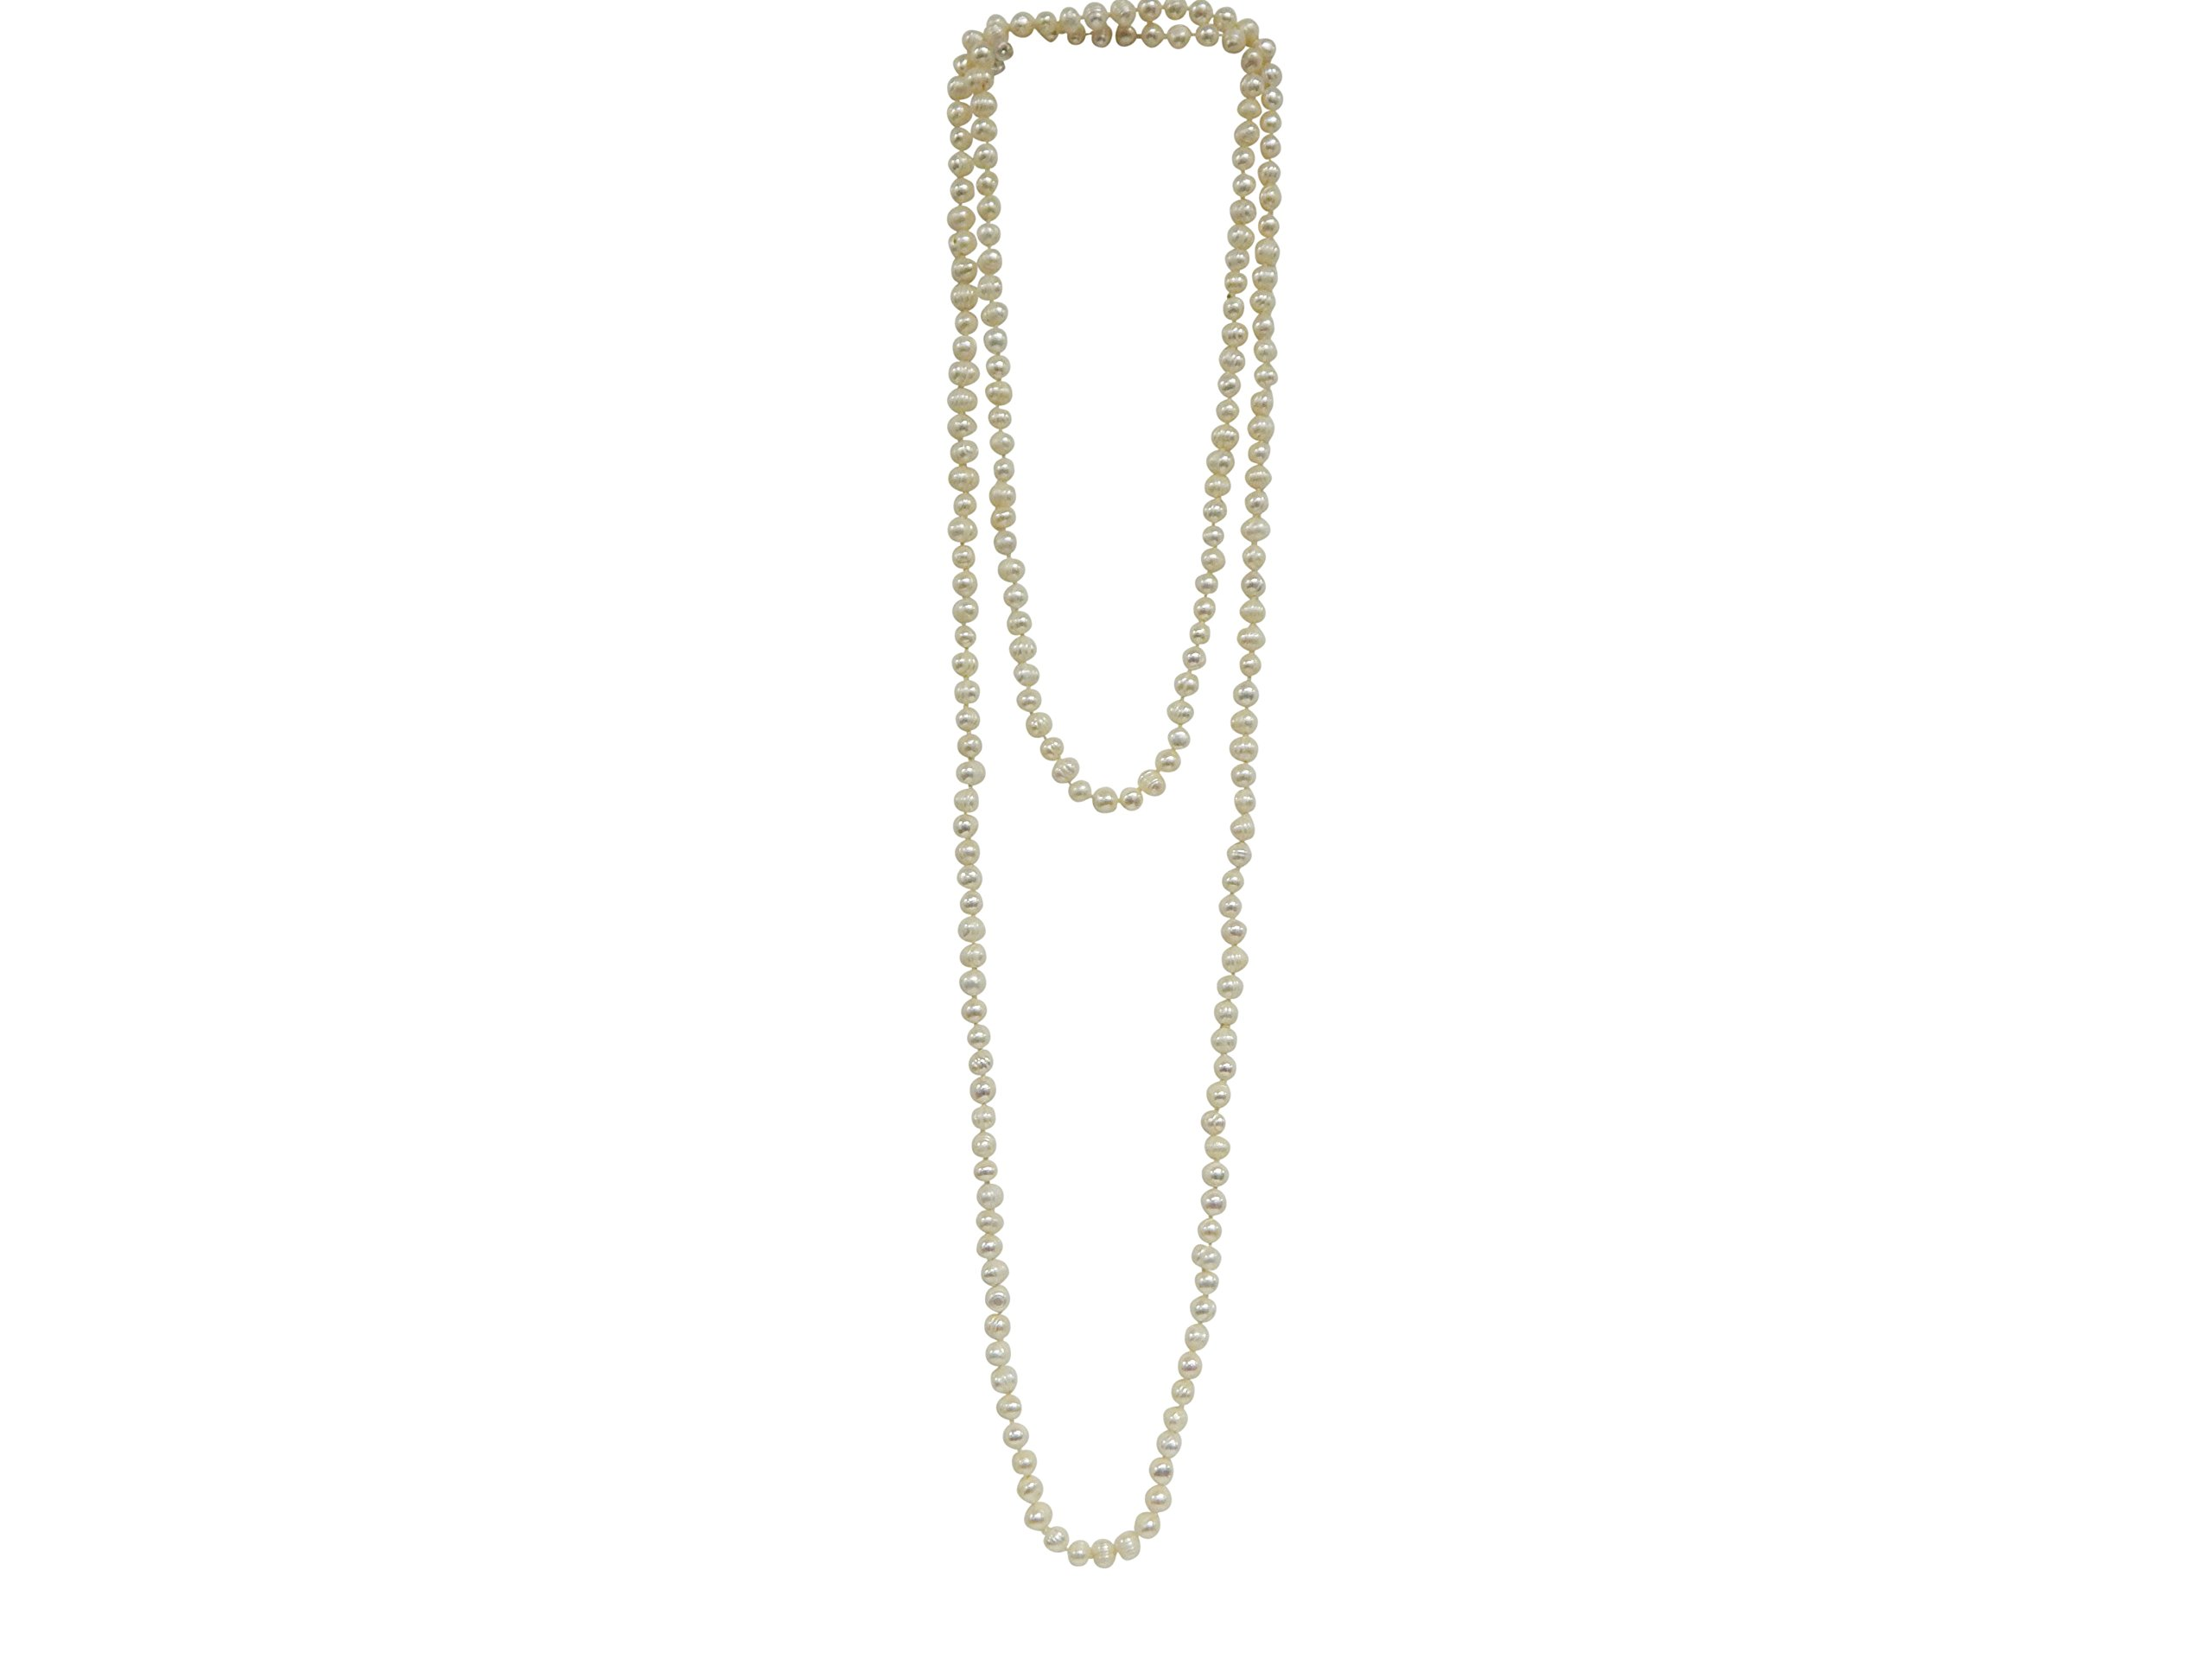 OPERA PEARL STRAND 35'' Long Flapper Necklace 8-9mm White Freshwater Pearls GIFT BOXED